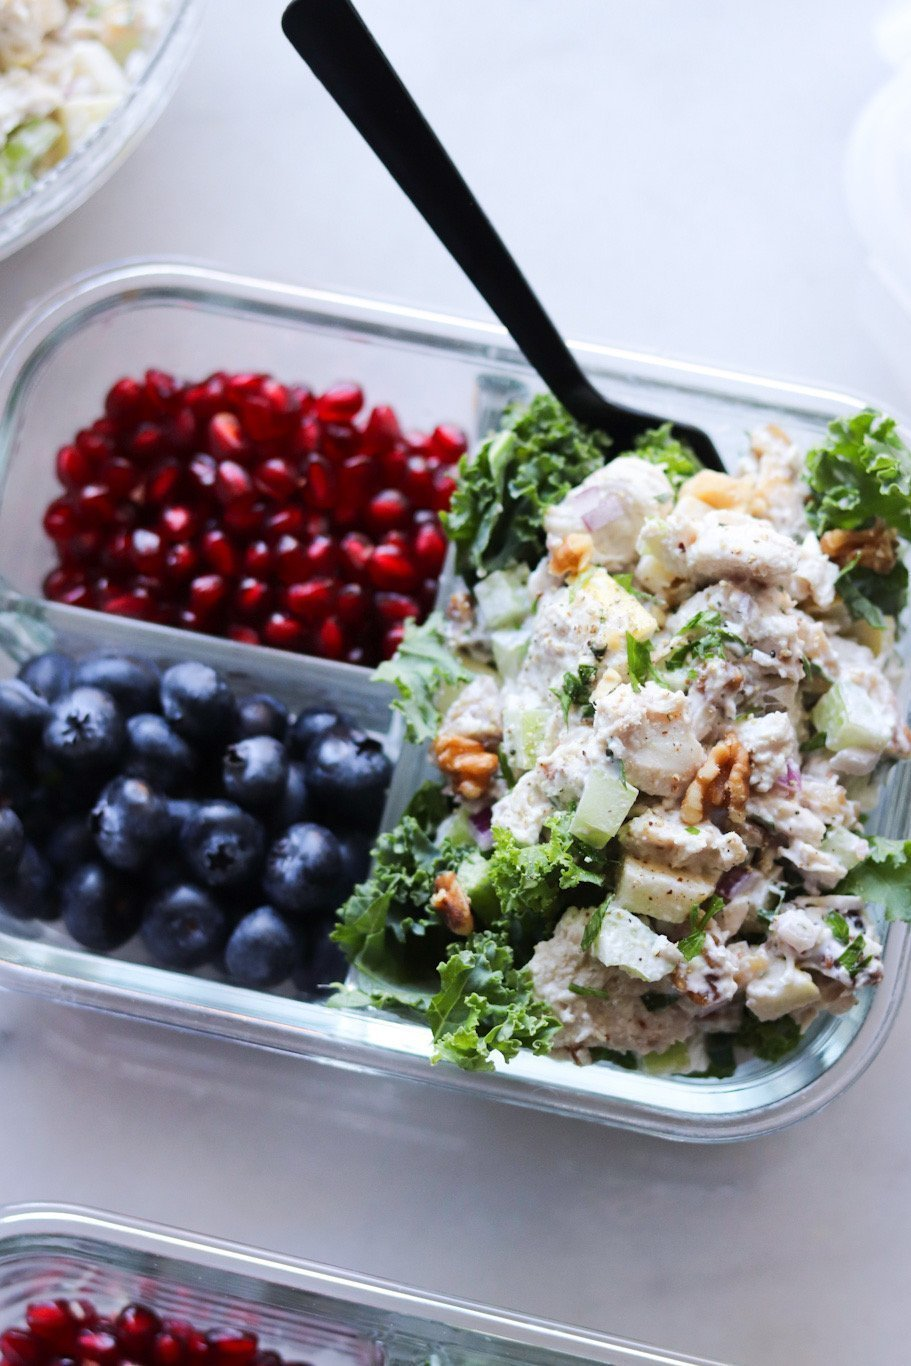 A glass meal prep container is filled with the apple walnut chicken salad, fresh kale, and pomegranate and blueberries.